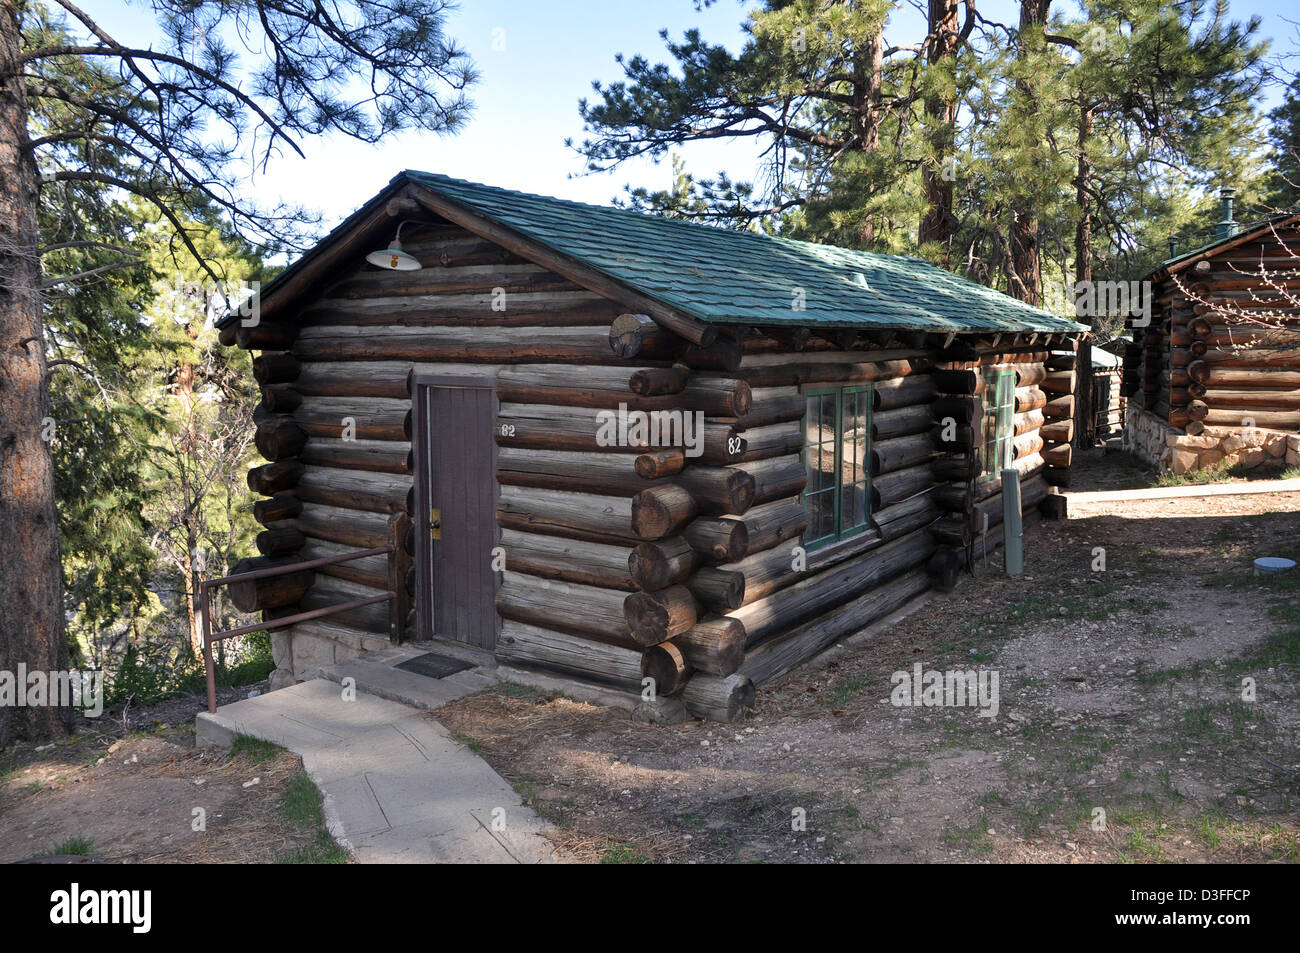 eat canyon phantom in my to park cabins where npsmichaelquinn ranch stay camp grand